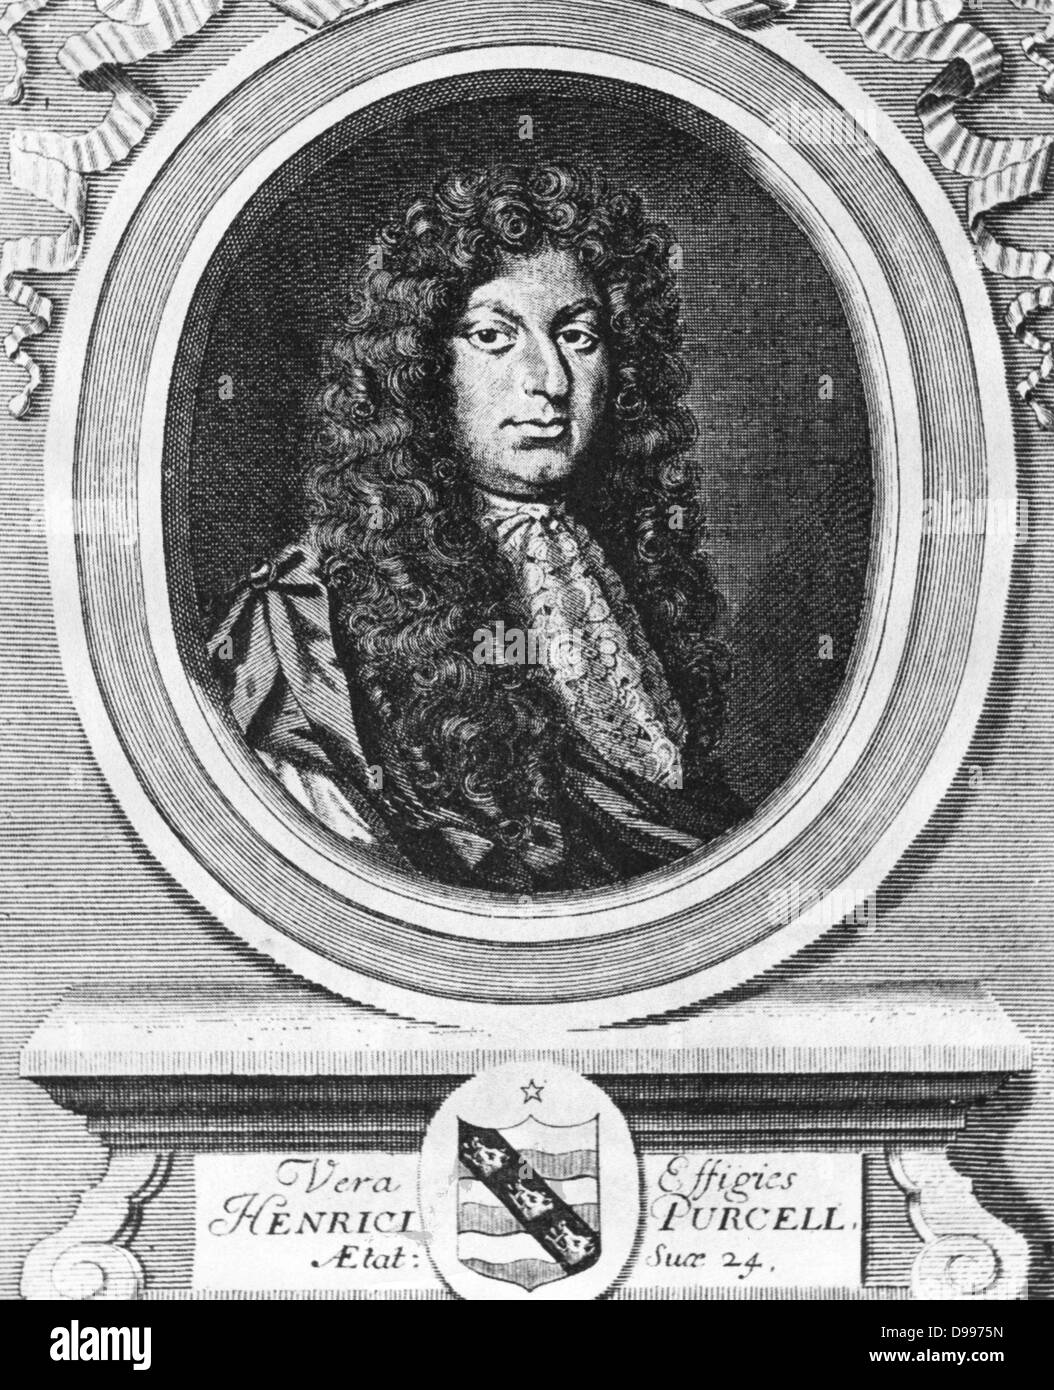 Portrait of the English composer Henry Purcell  1659  - 1695 - Stock Image